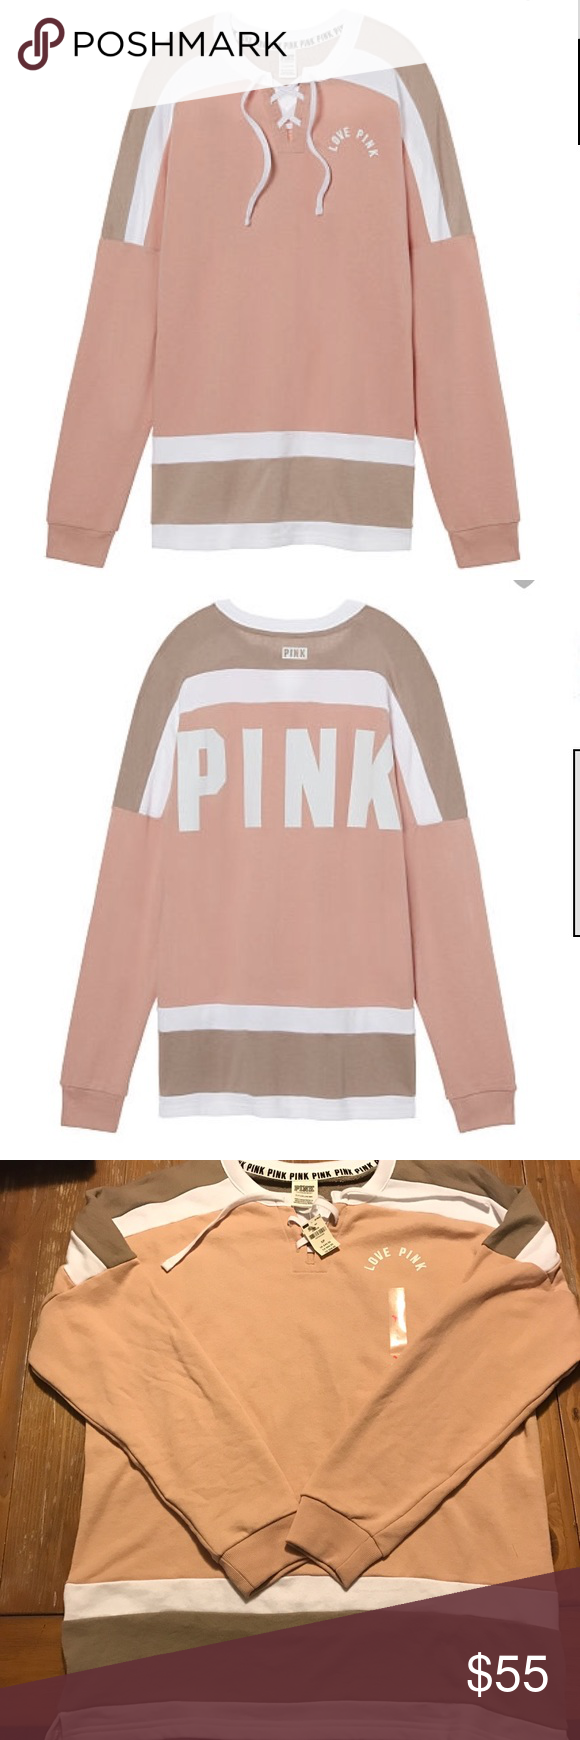 🌸1 HR SALE🌸 VS Pink laced up varsity crew NWT | Scoop neck, vs ...